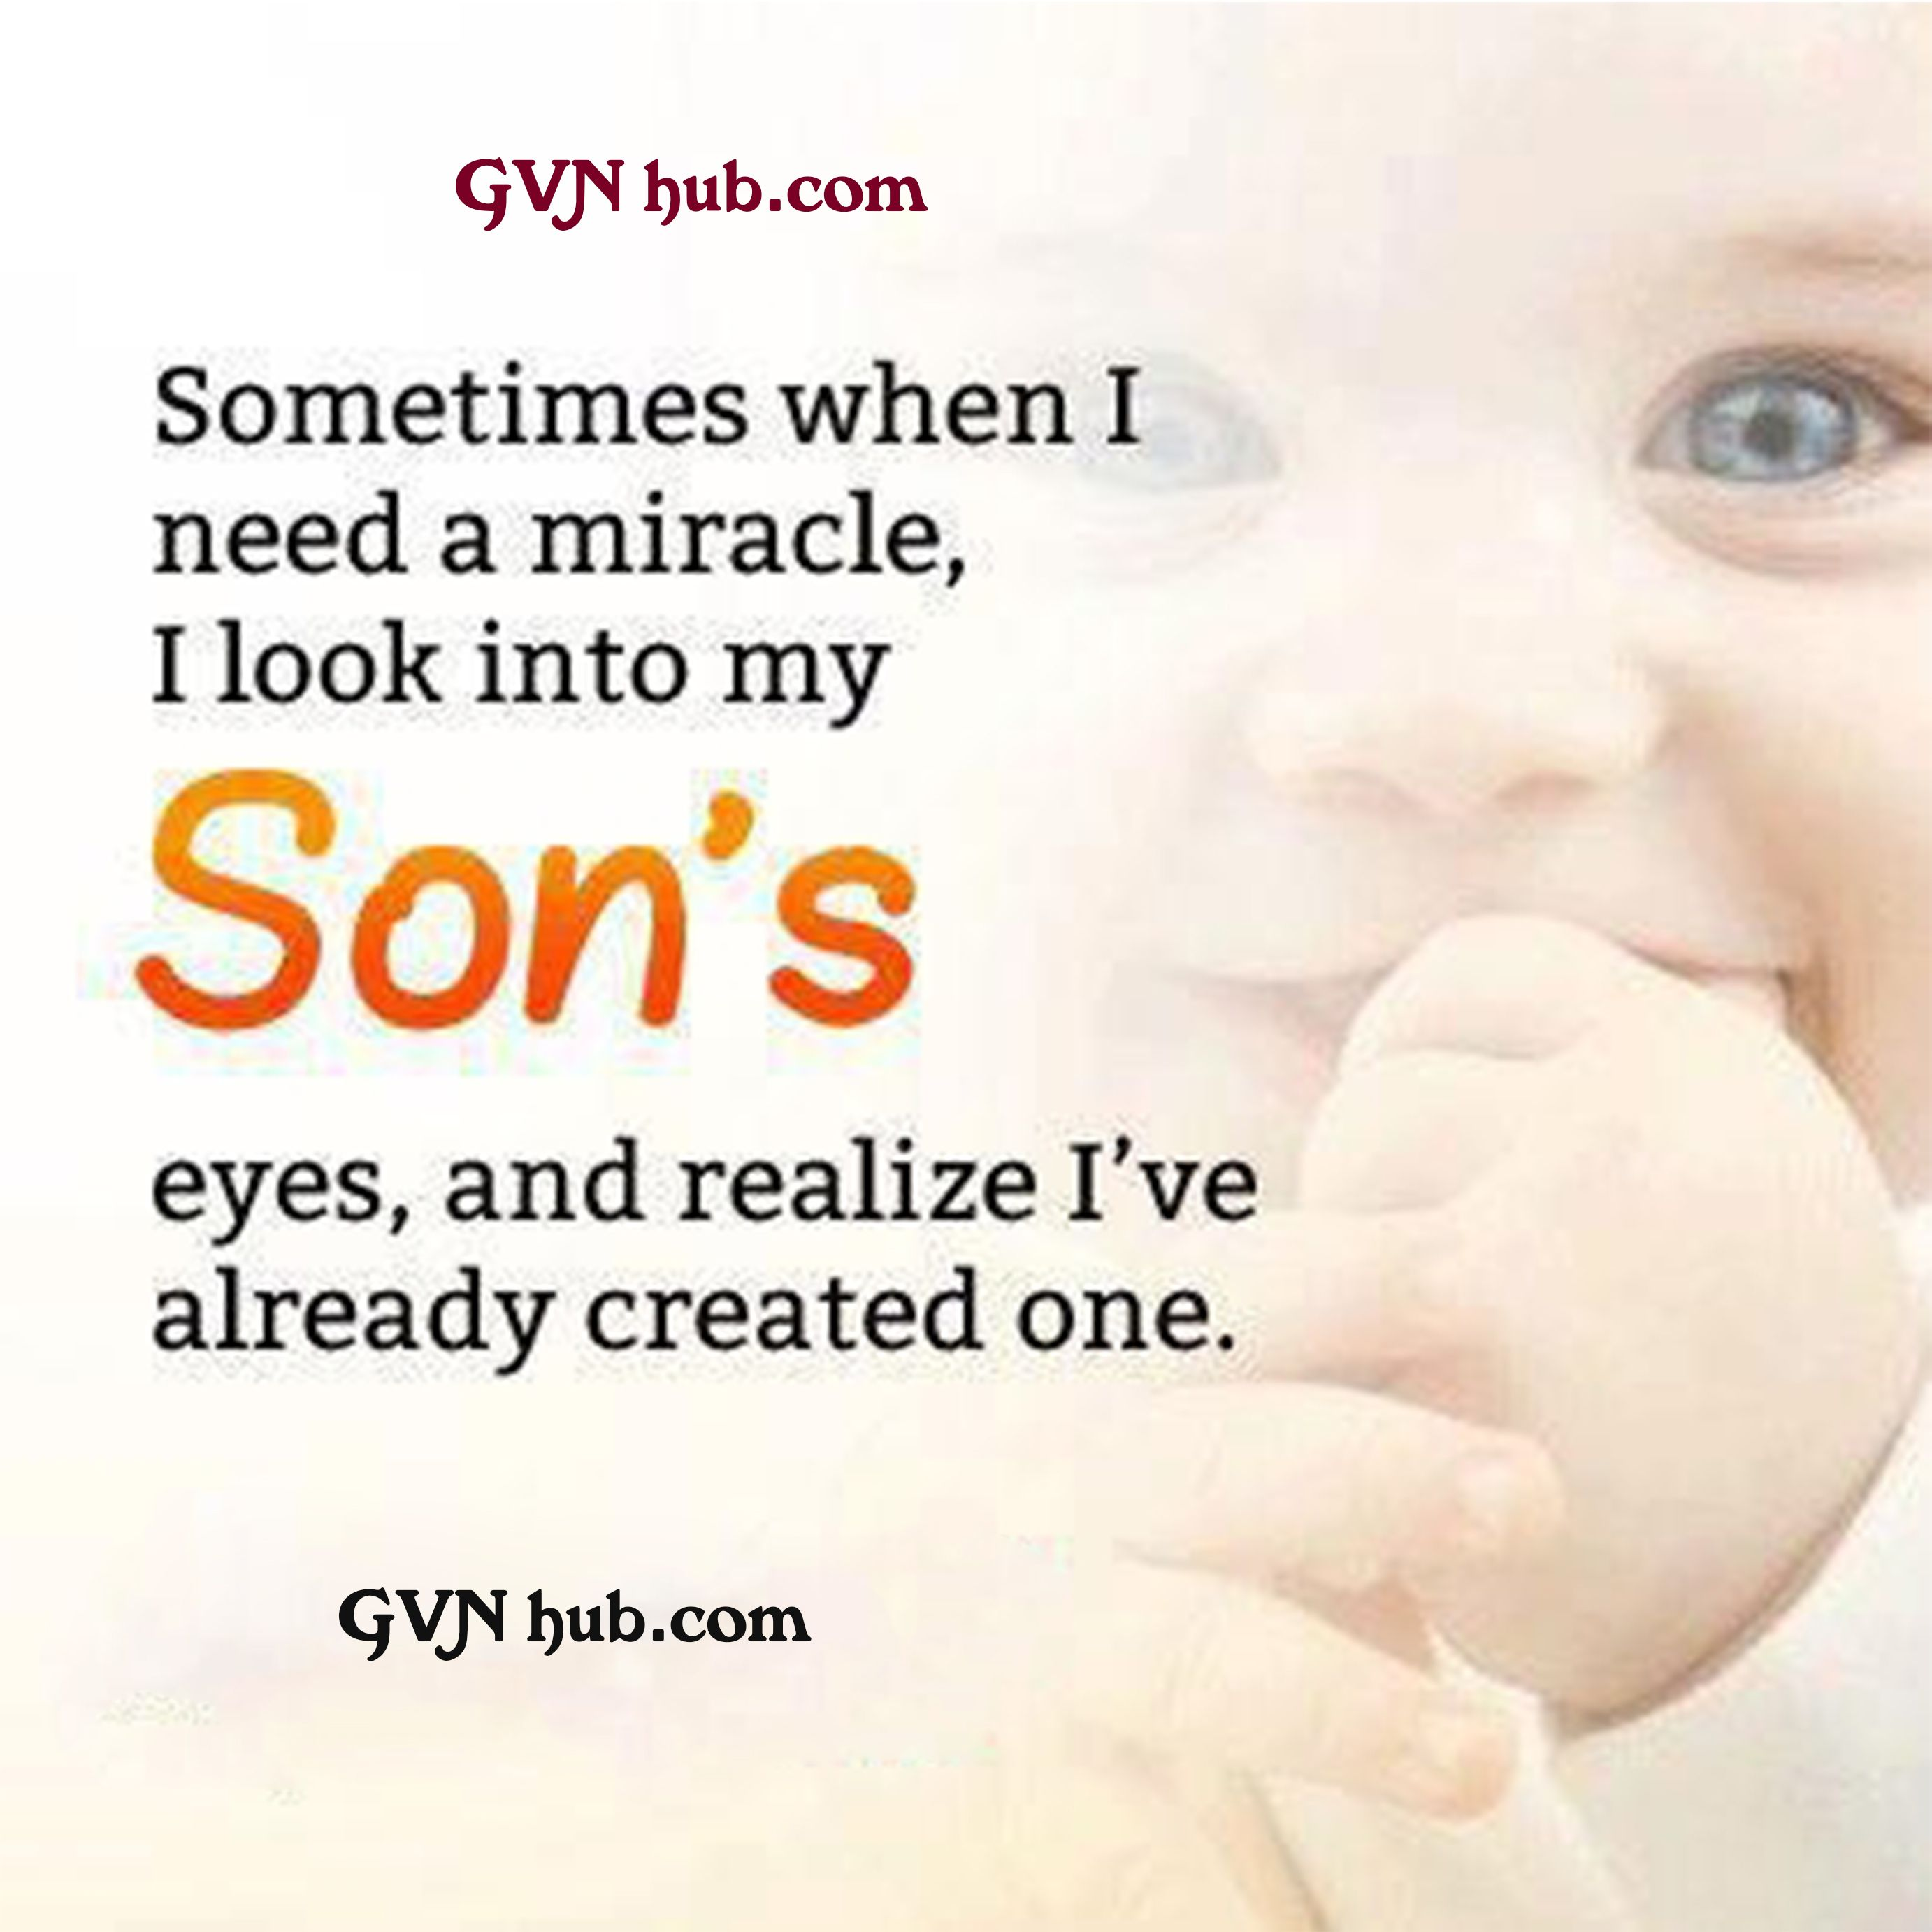 25 Best Mom And Dad Quotes Memories Gvn Hub Son Quotes From Mom Son Quotes My Son Quotes